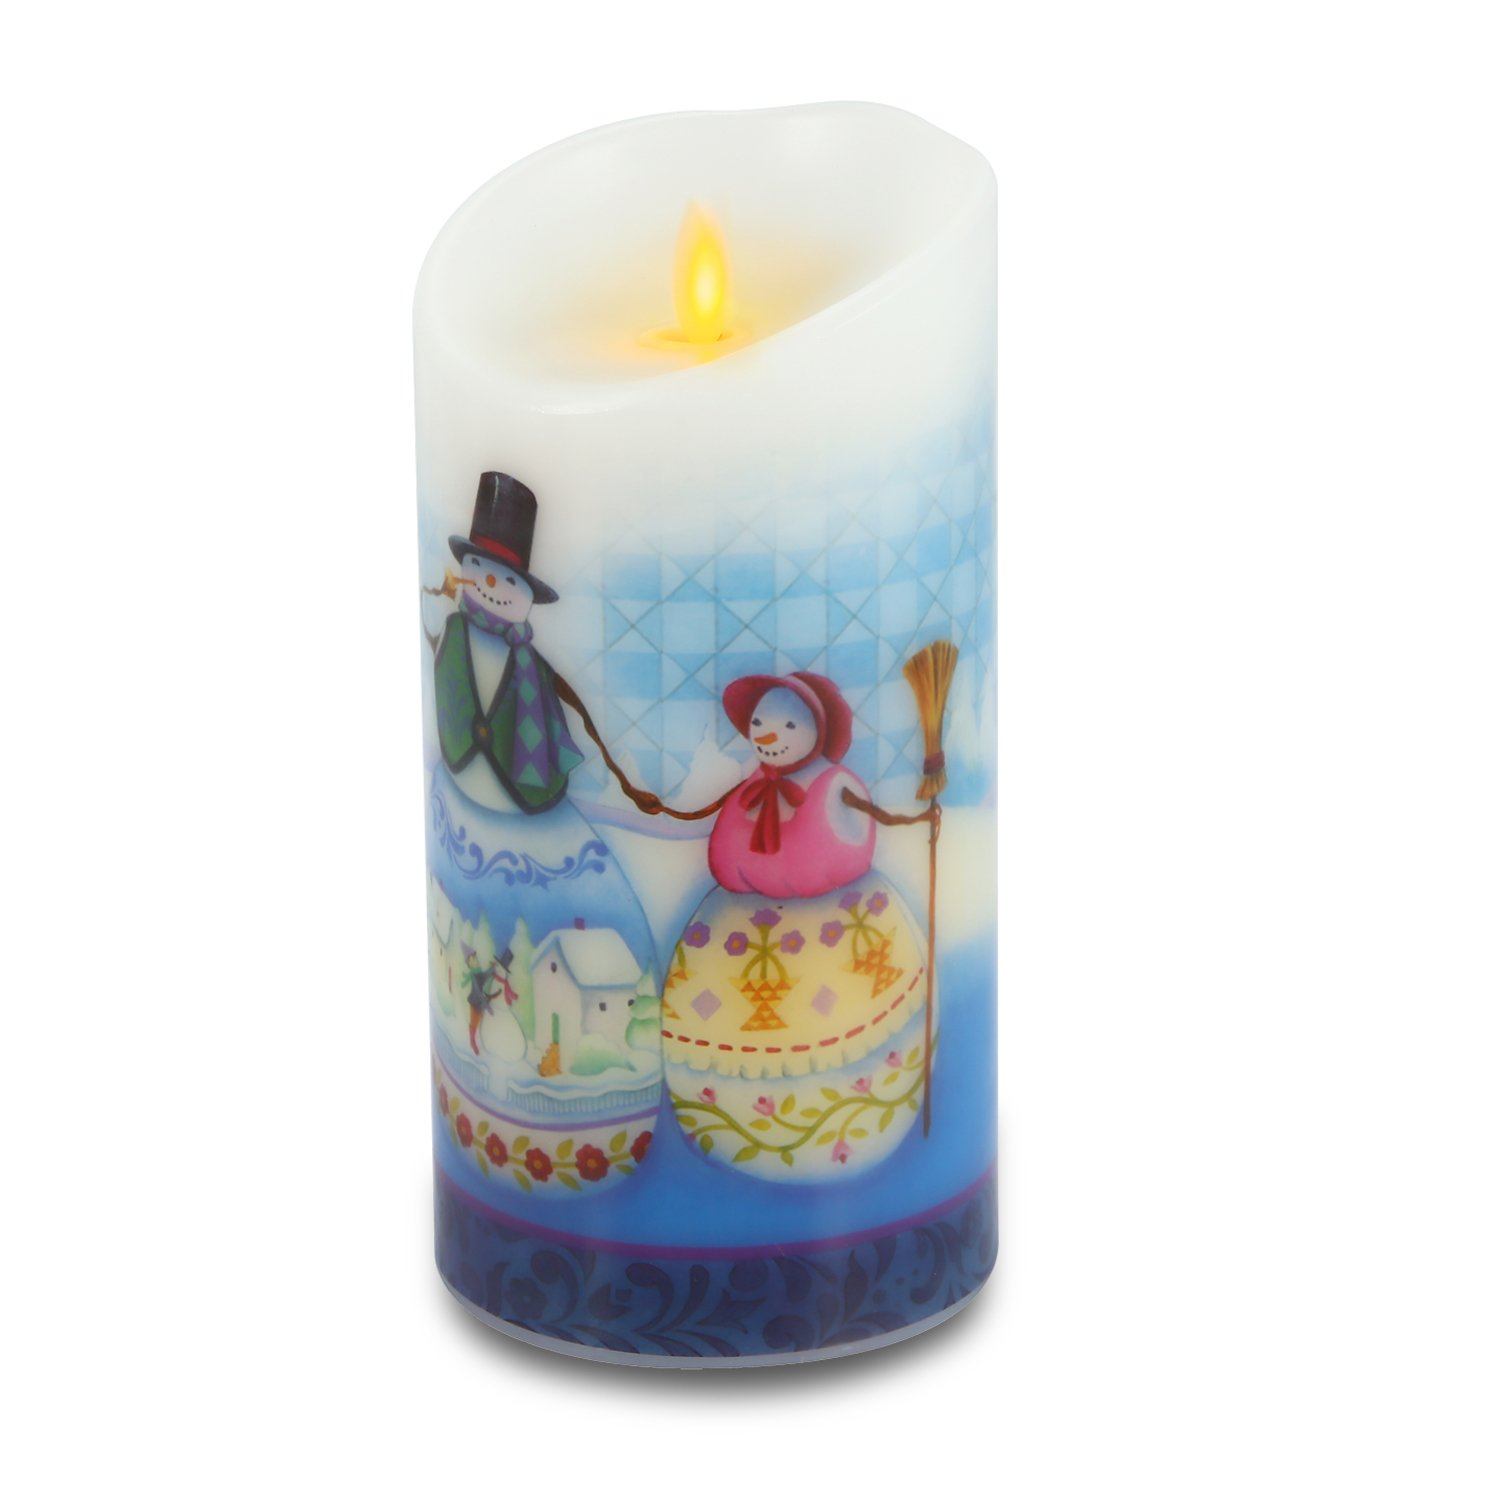 Ksperway Flameless Wax Candles, Moving Wick LED Pillar Candle with Blow ON/Off Control,Timer and Remote 3.5 by 7 Inch Picture (Snow Man) by Ksperway (Image #4)